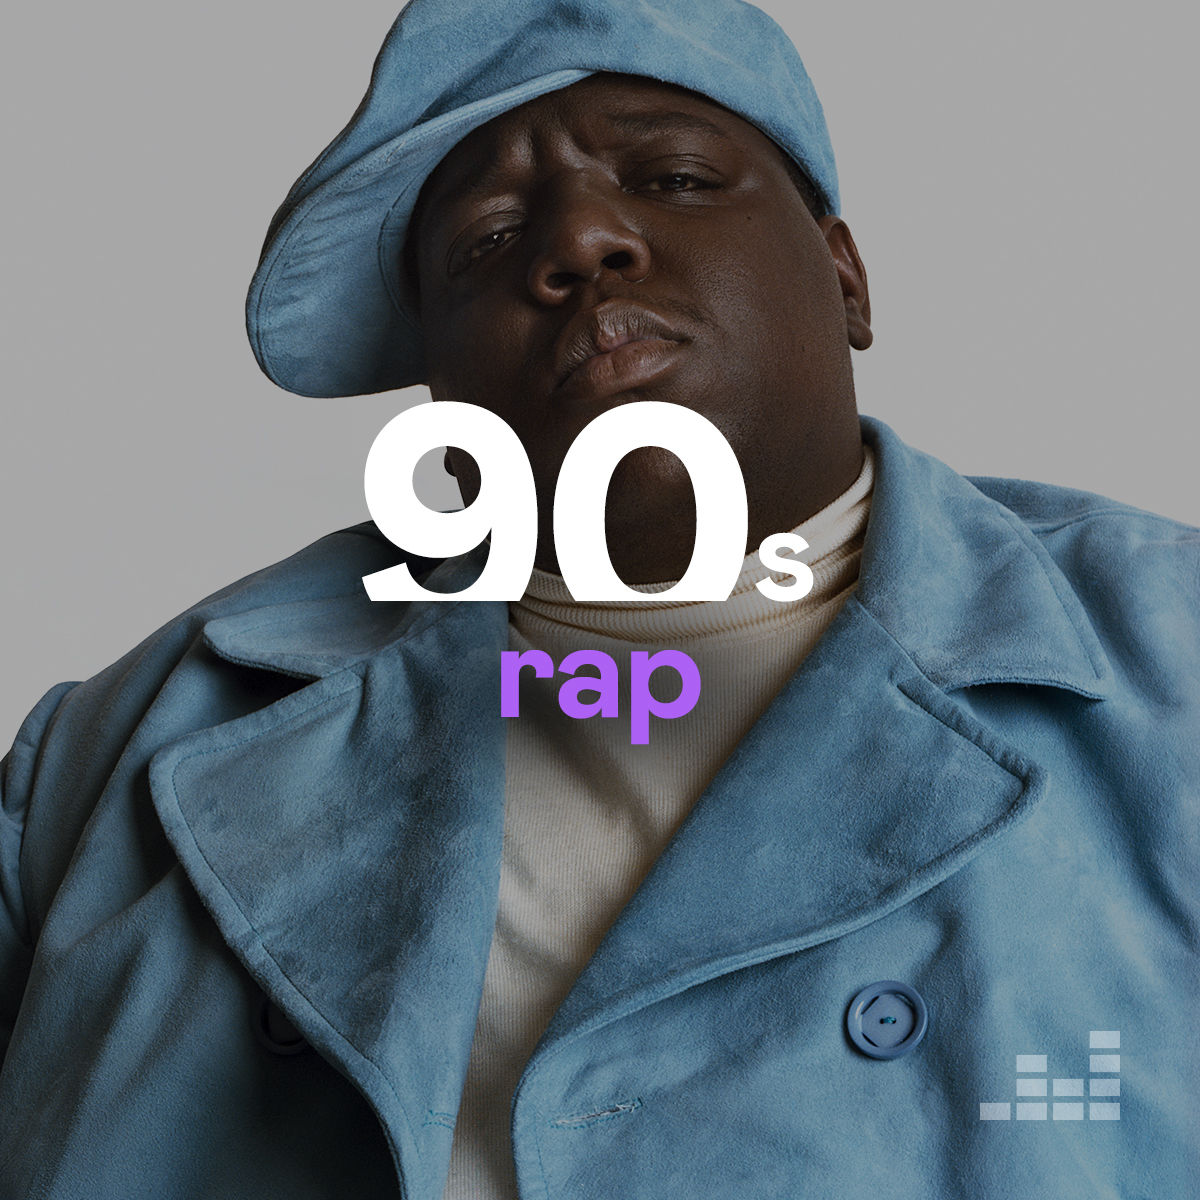 Cover Playlist US - The Notorious B.I.G. - Juicy (2005 Remaster) (Explicit) mp3 gratuitement